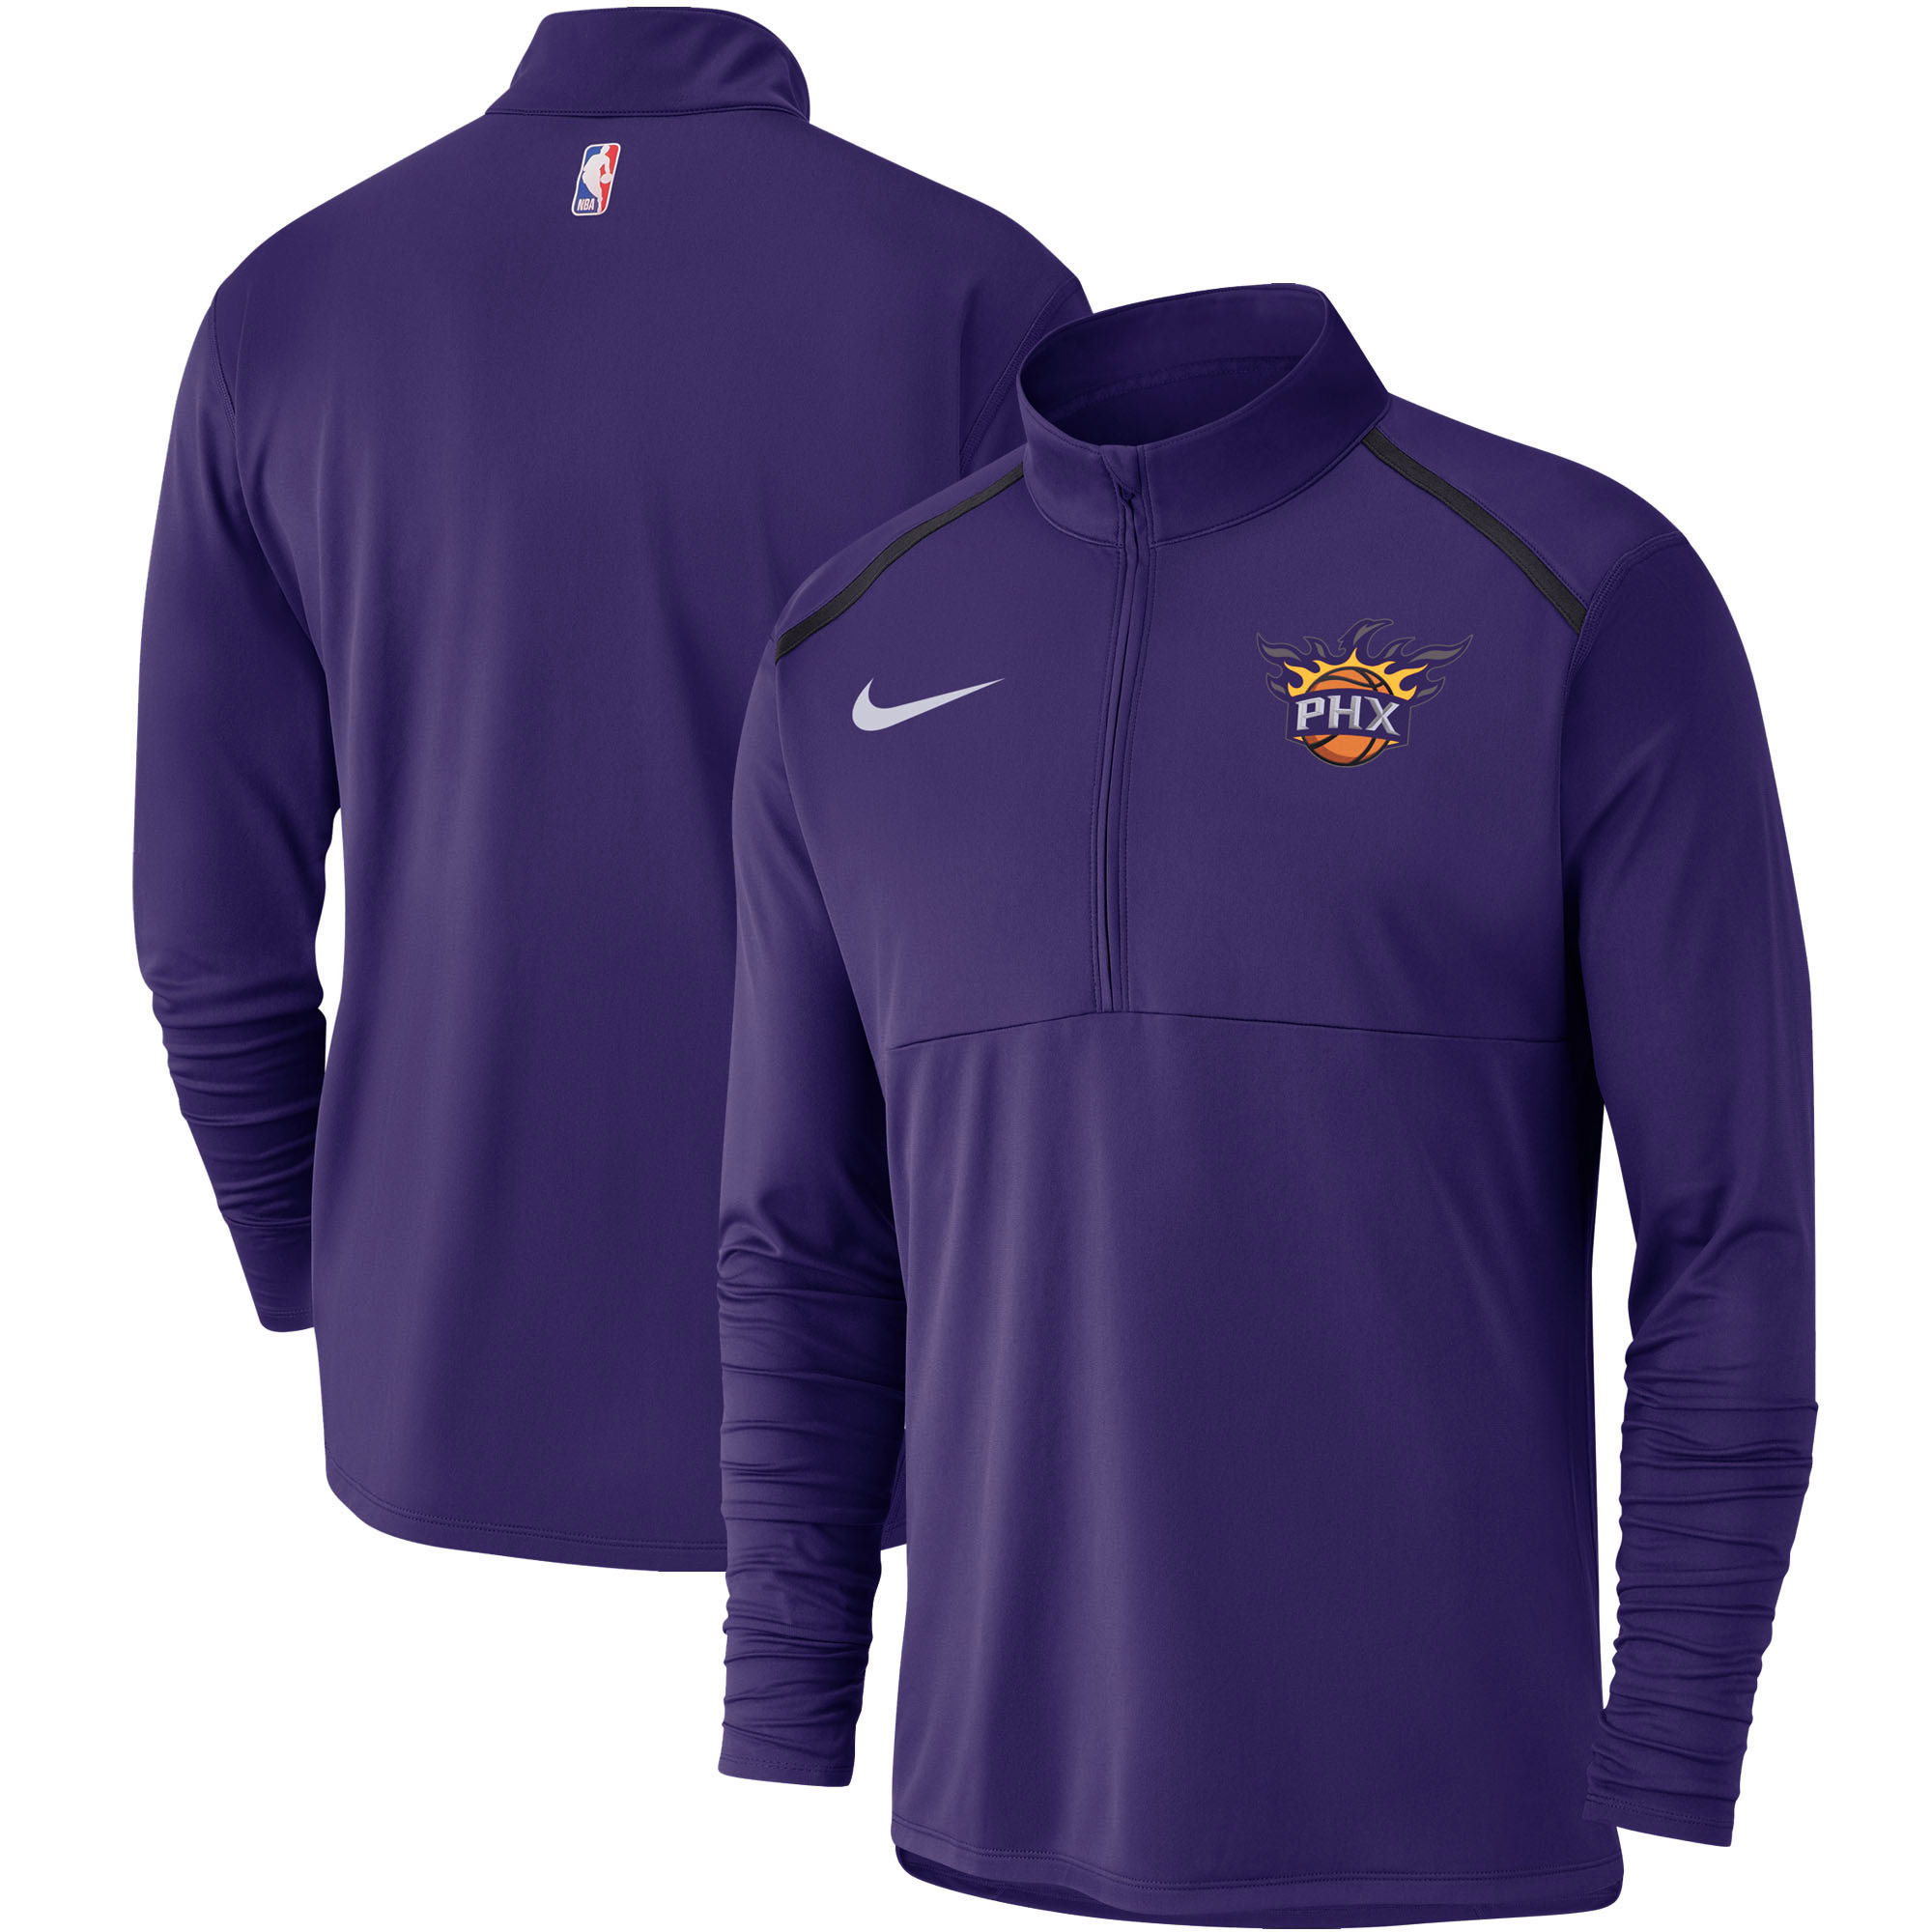 Phoenix Suns Nike Element Performance Half-Zip Pullover Jacket - Purple